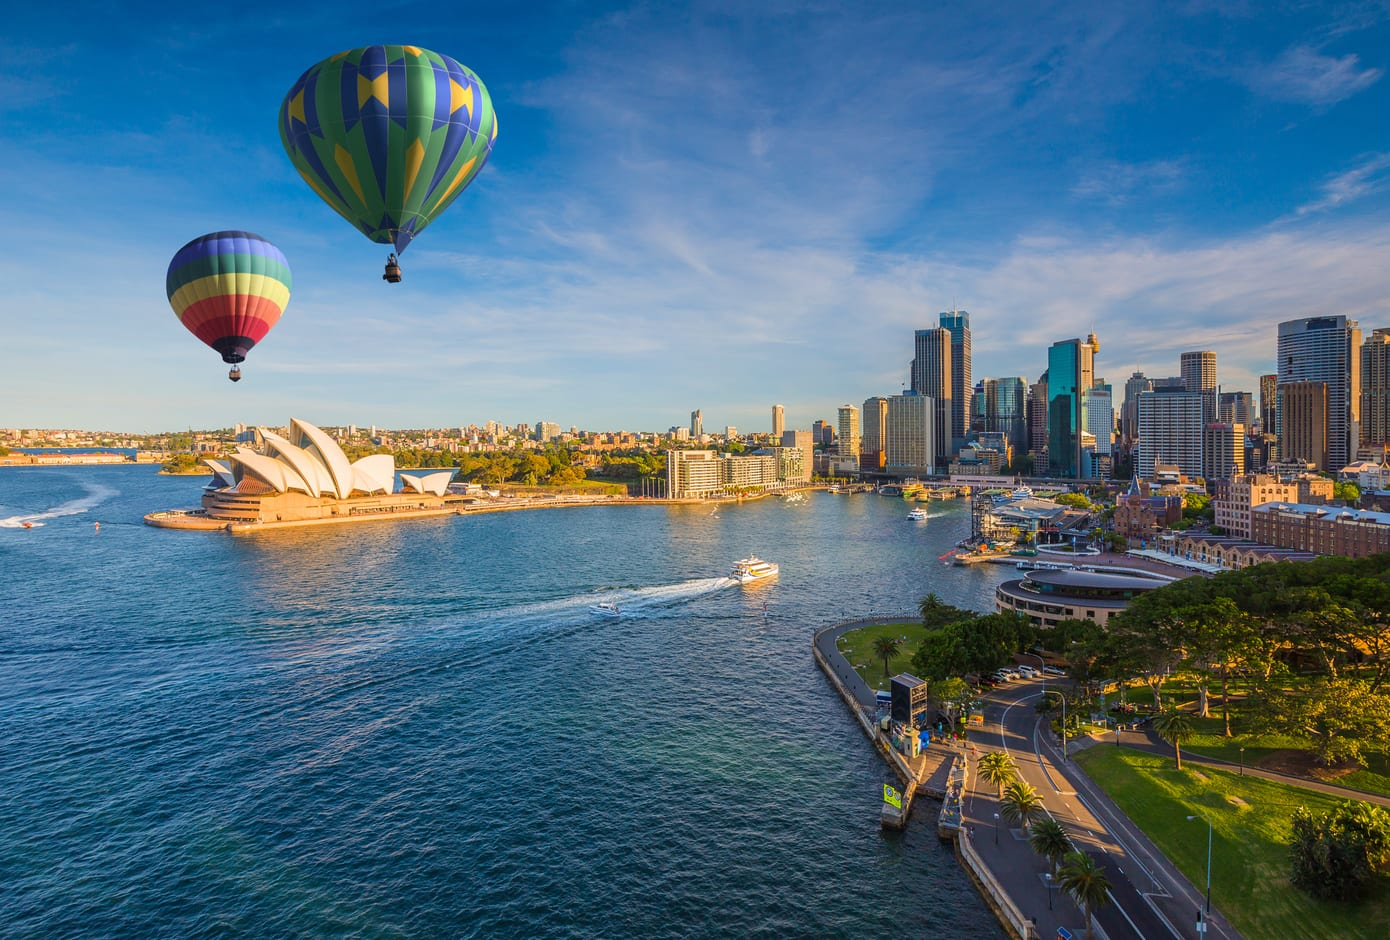 Two hot air balloons flying over the Sydney bay, in Sydney, Australia.